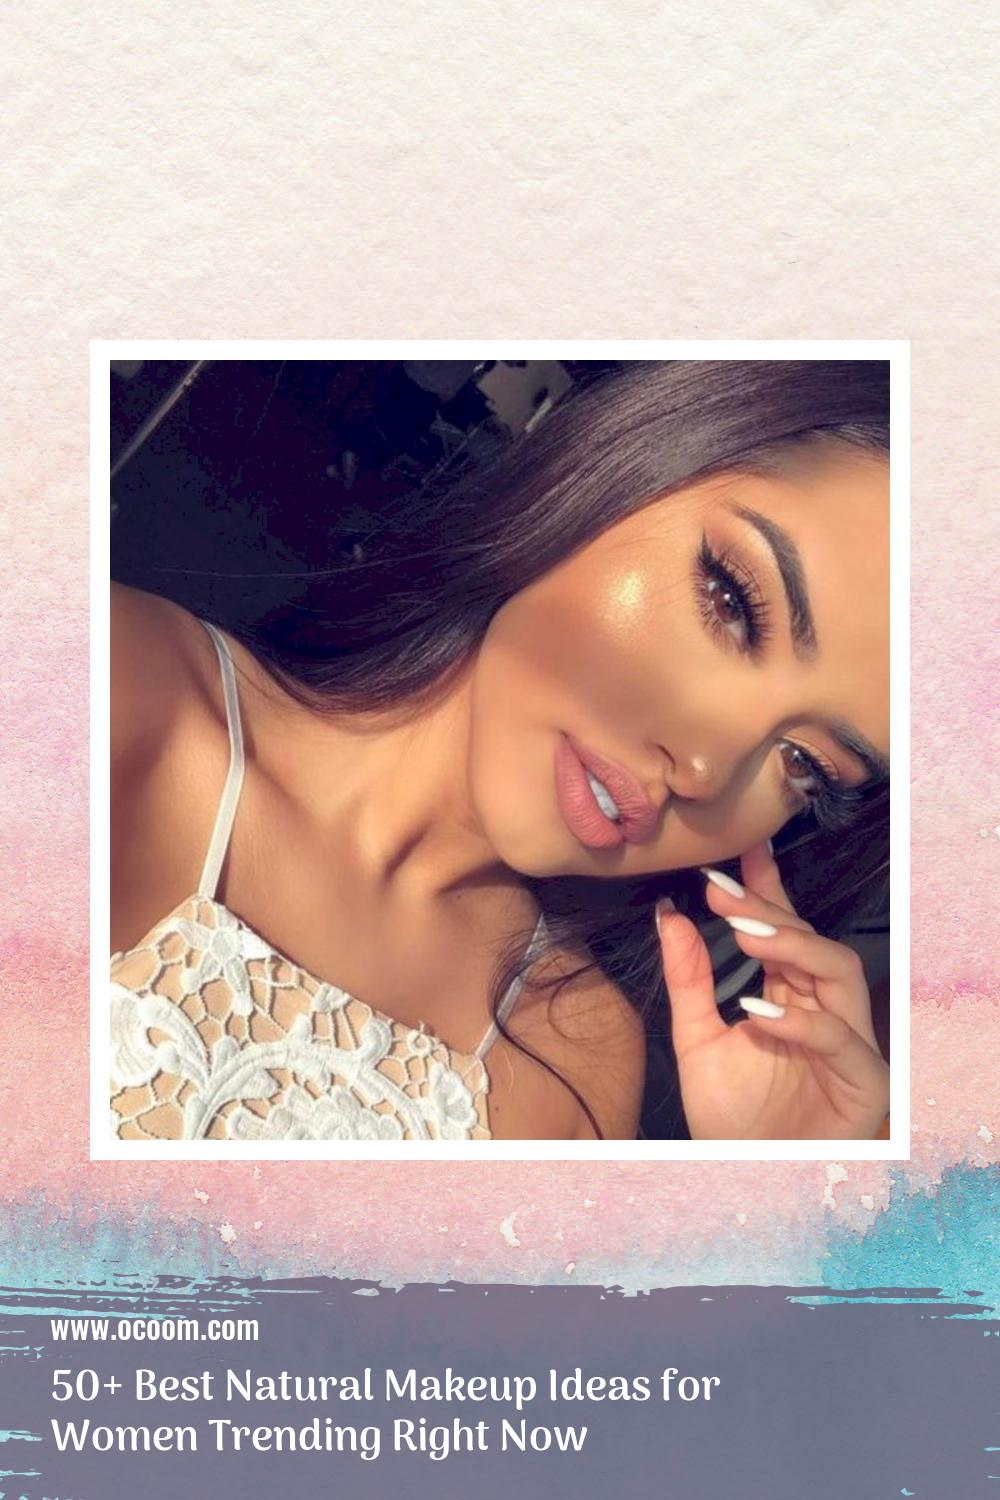 50+ Best Natural Makeup Ideas for Women Trending Right Now 16